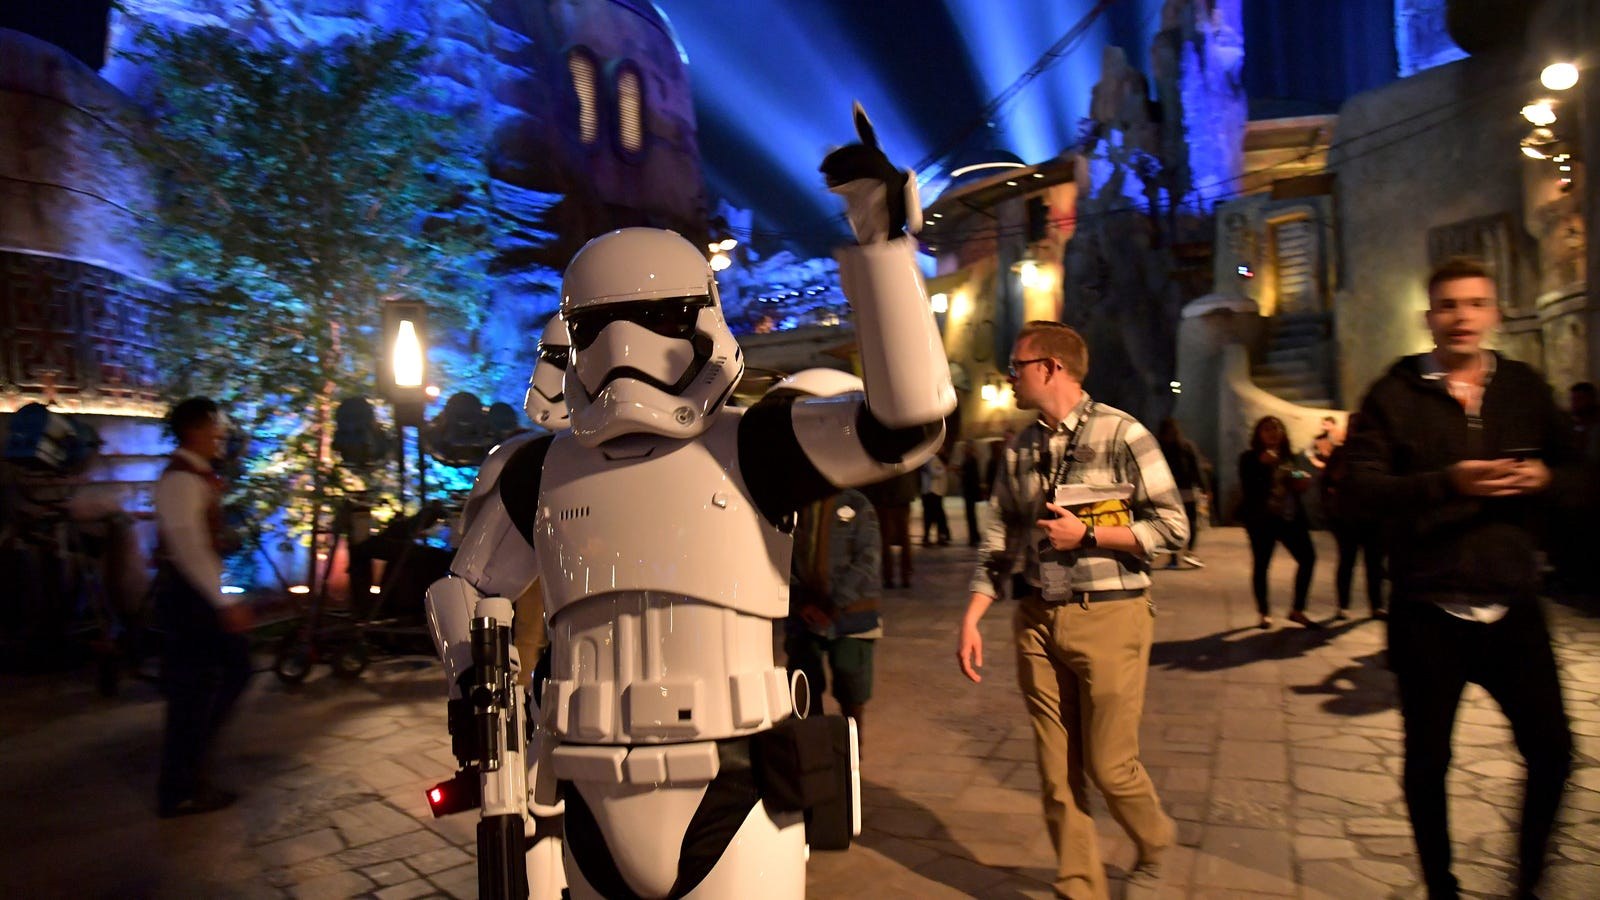 Star Wars fans are just straight up selling shit they stole from Galaxy's Edge